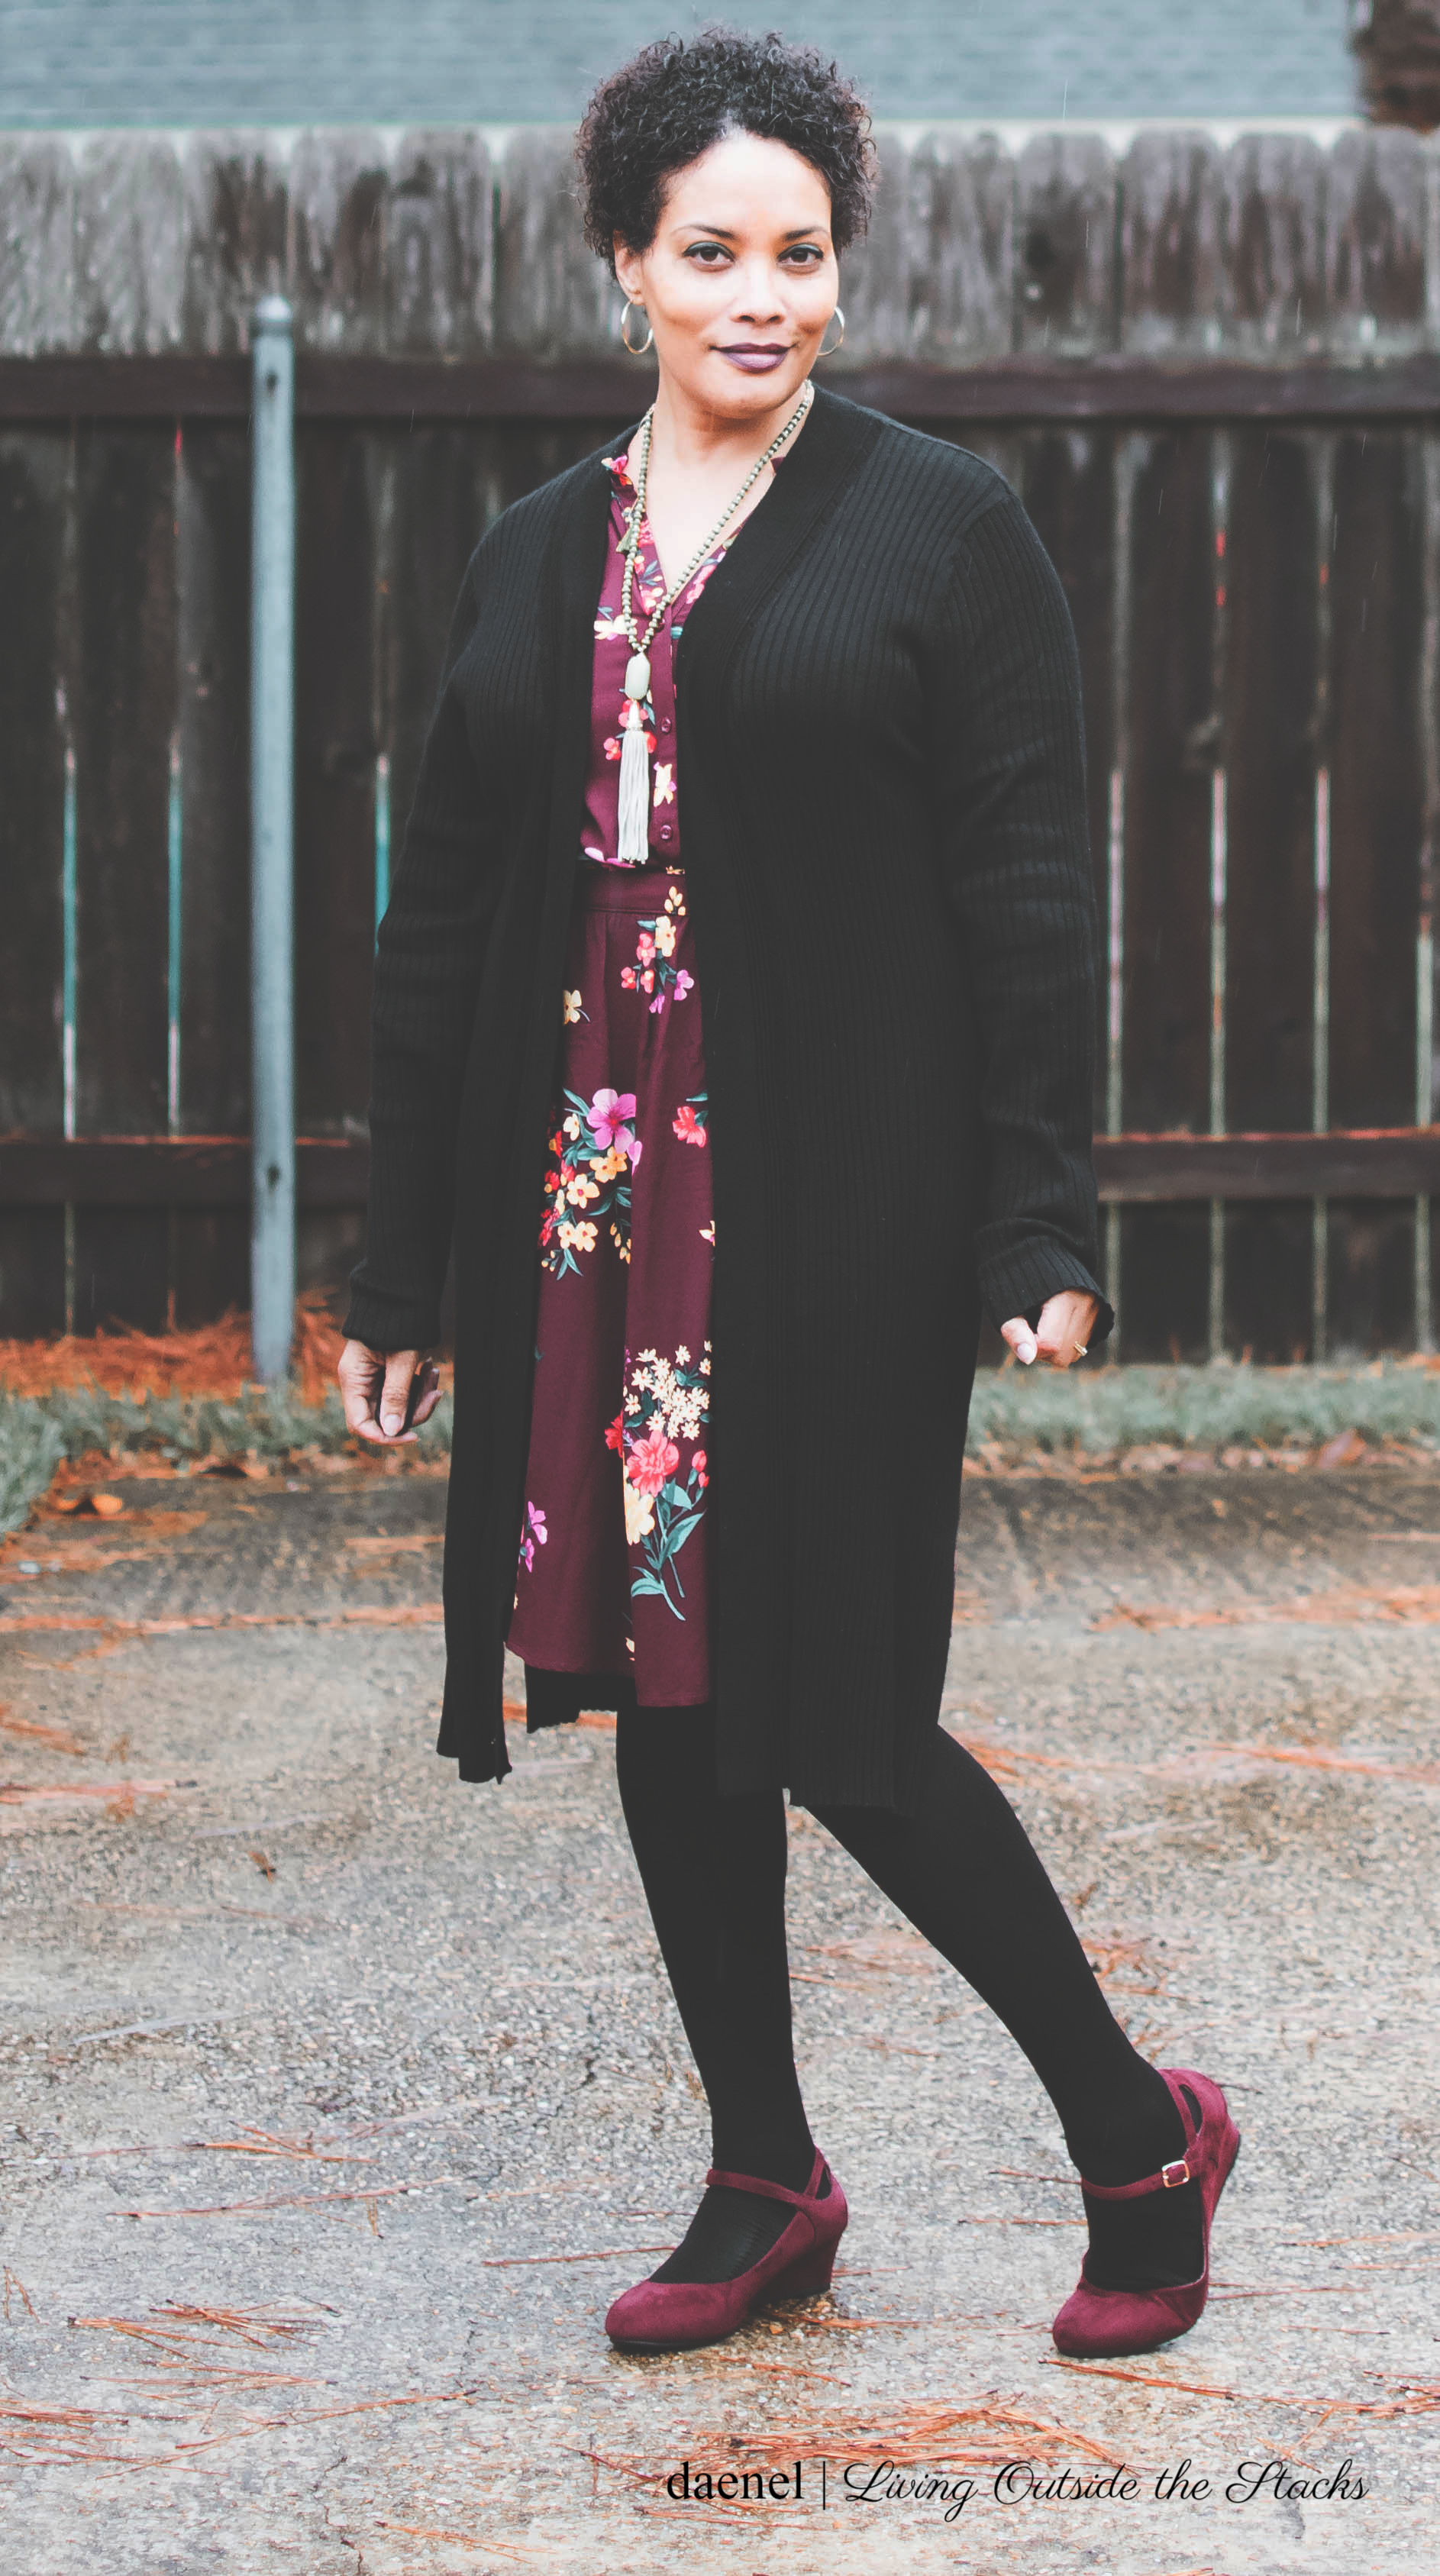 Black Maxi Cardi Old Navy Burgundy Floral Dress Black Tights and Burgundy Mary Jane Wedges {living outside the stacks}